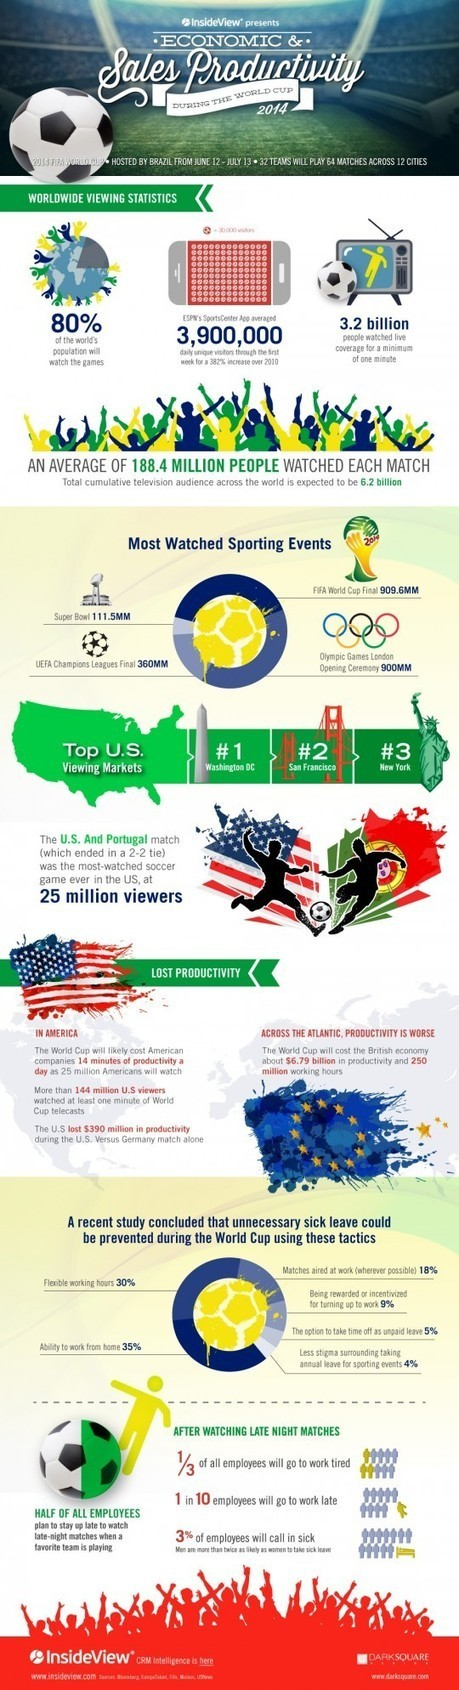 World Cup is Hitting Business Productivity | Internet Psychology | Scoop.it